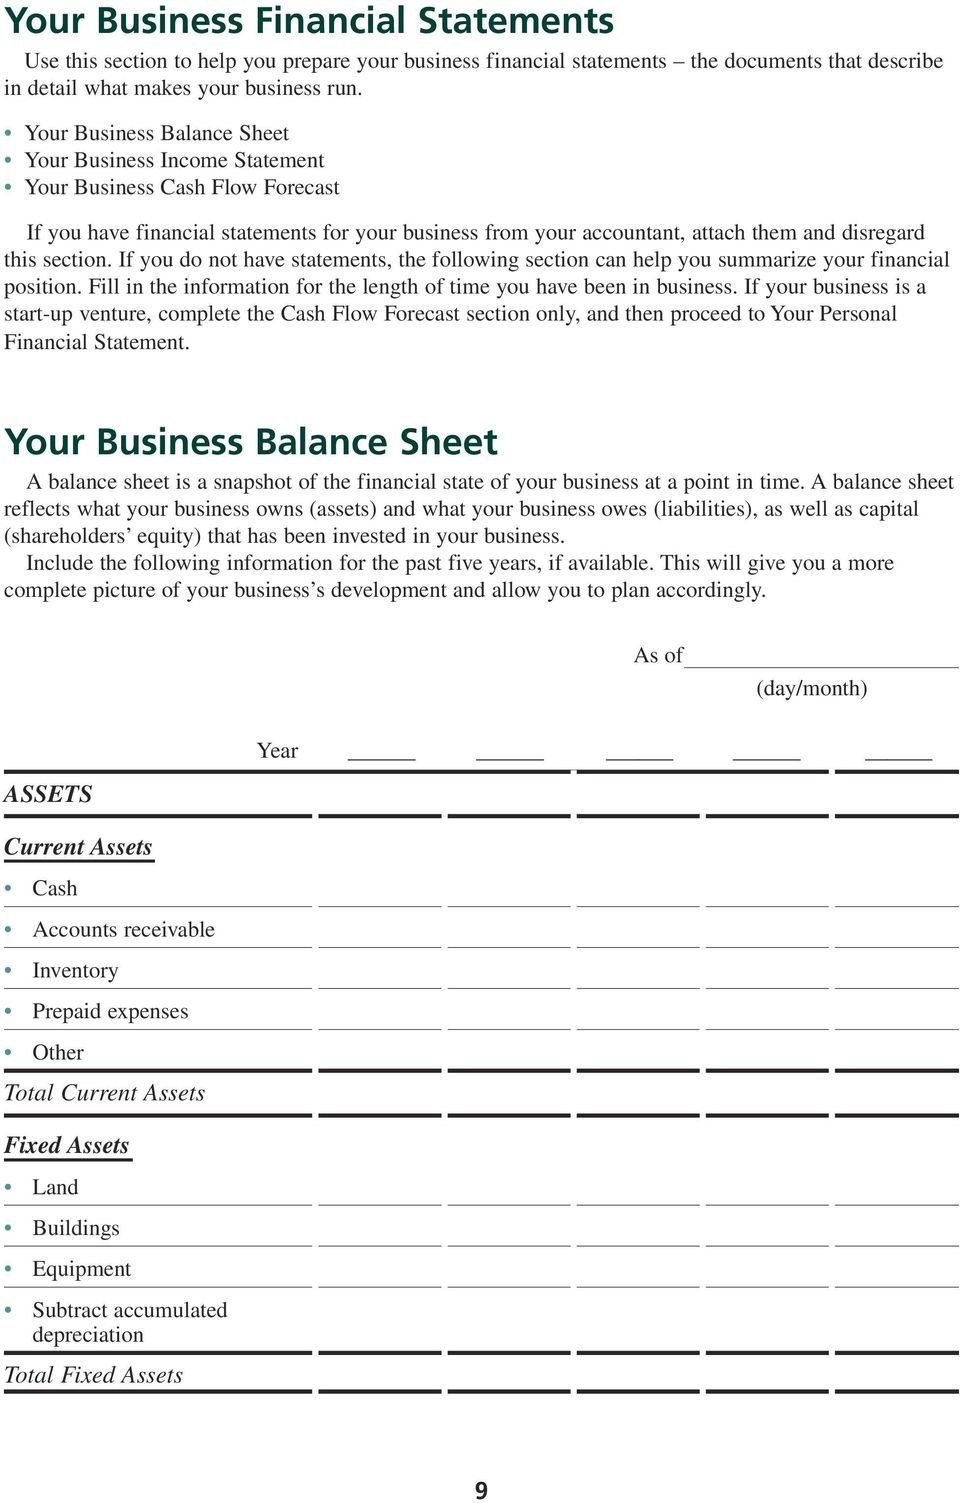 section. If you do not have statements, the following section can help you summarize your financial position. Fill in the information for the length of time you have been in business.